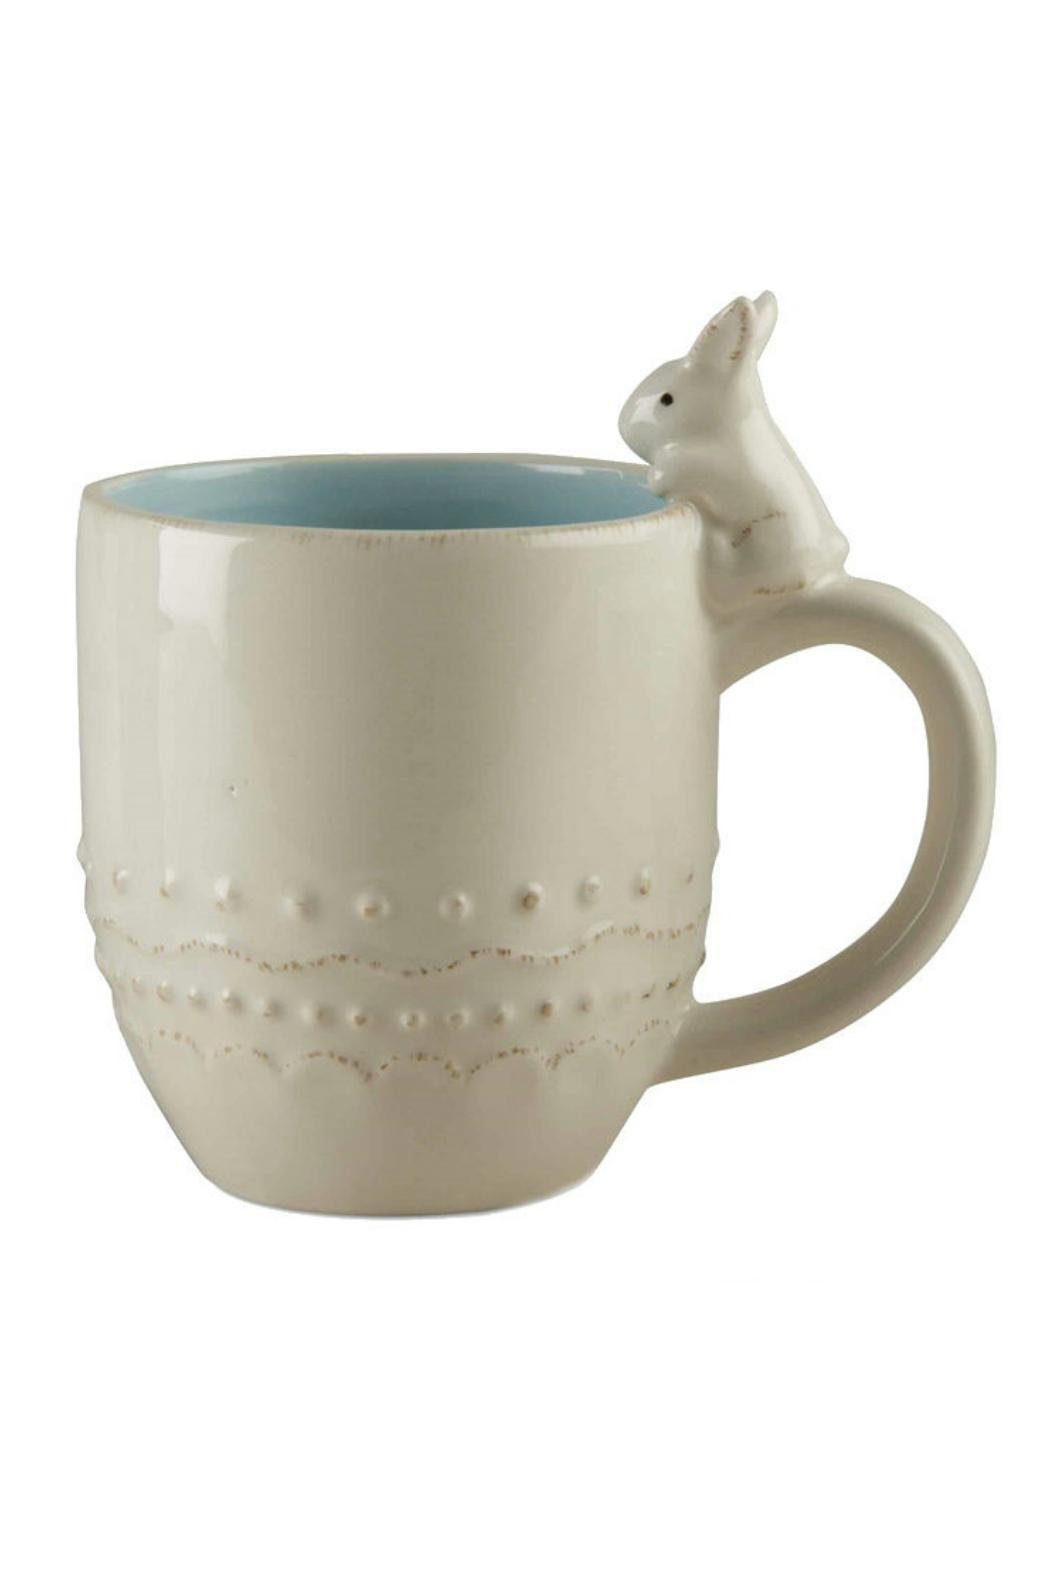 Tag Ltd Embossed Bunny Mug From Omaha By The Afternoon